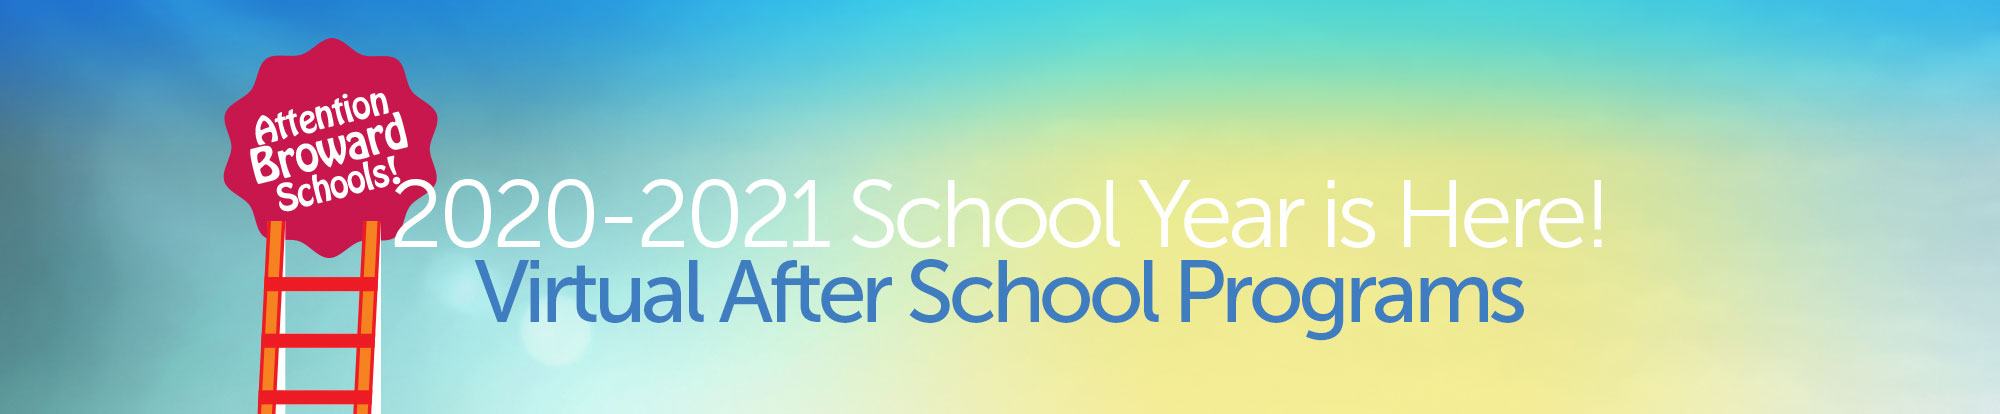 page header 2020 2021 virtual after school programs